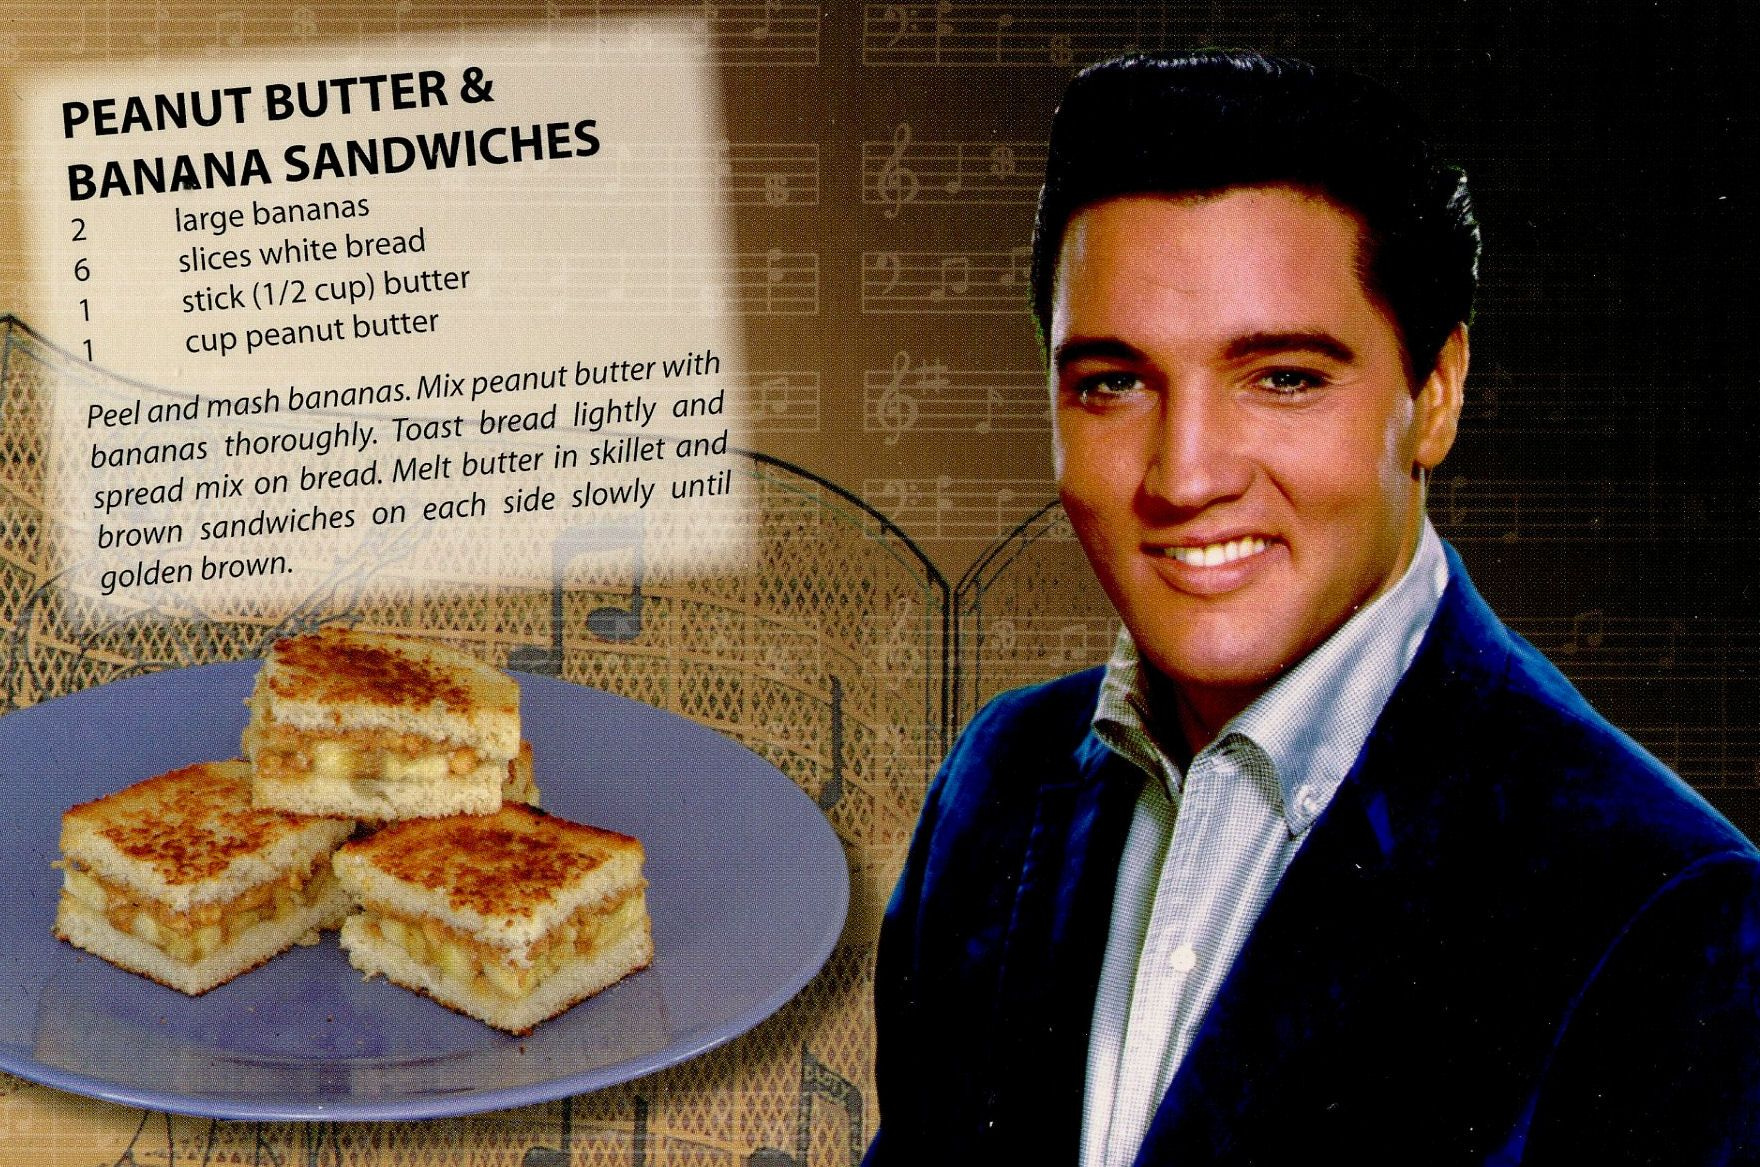 Authentic Recipe From Graceland Elvis The King S Pb Banana Sandwiches Banana Sandwich Peanut Butter Banana Sandwich Peanut Butter Banana